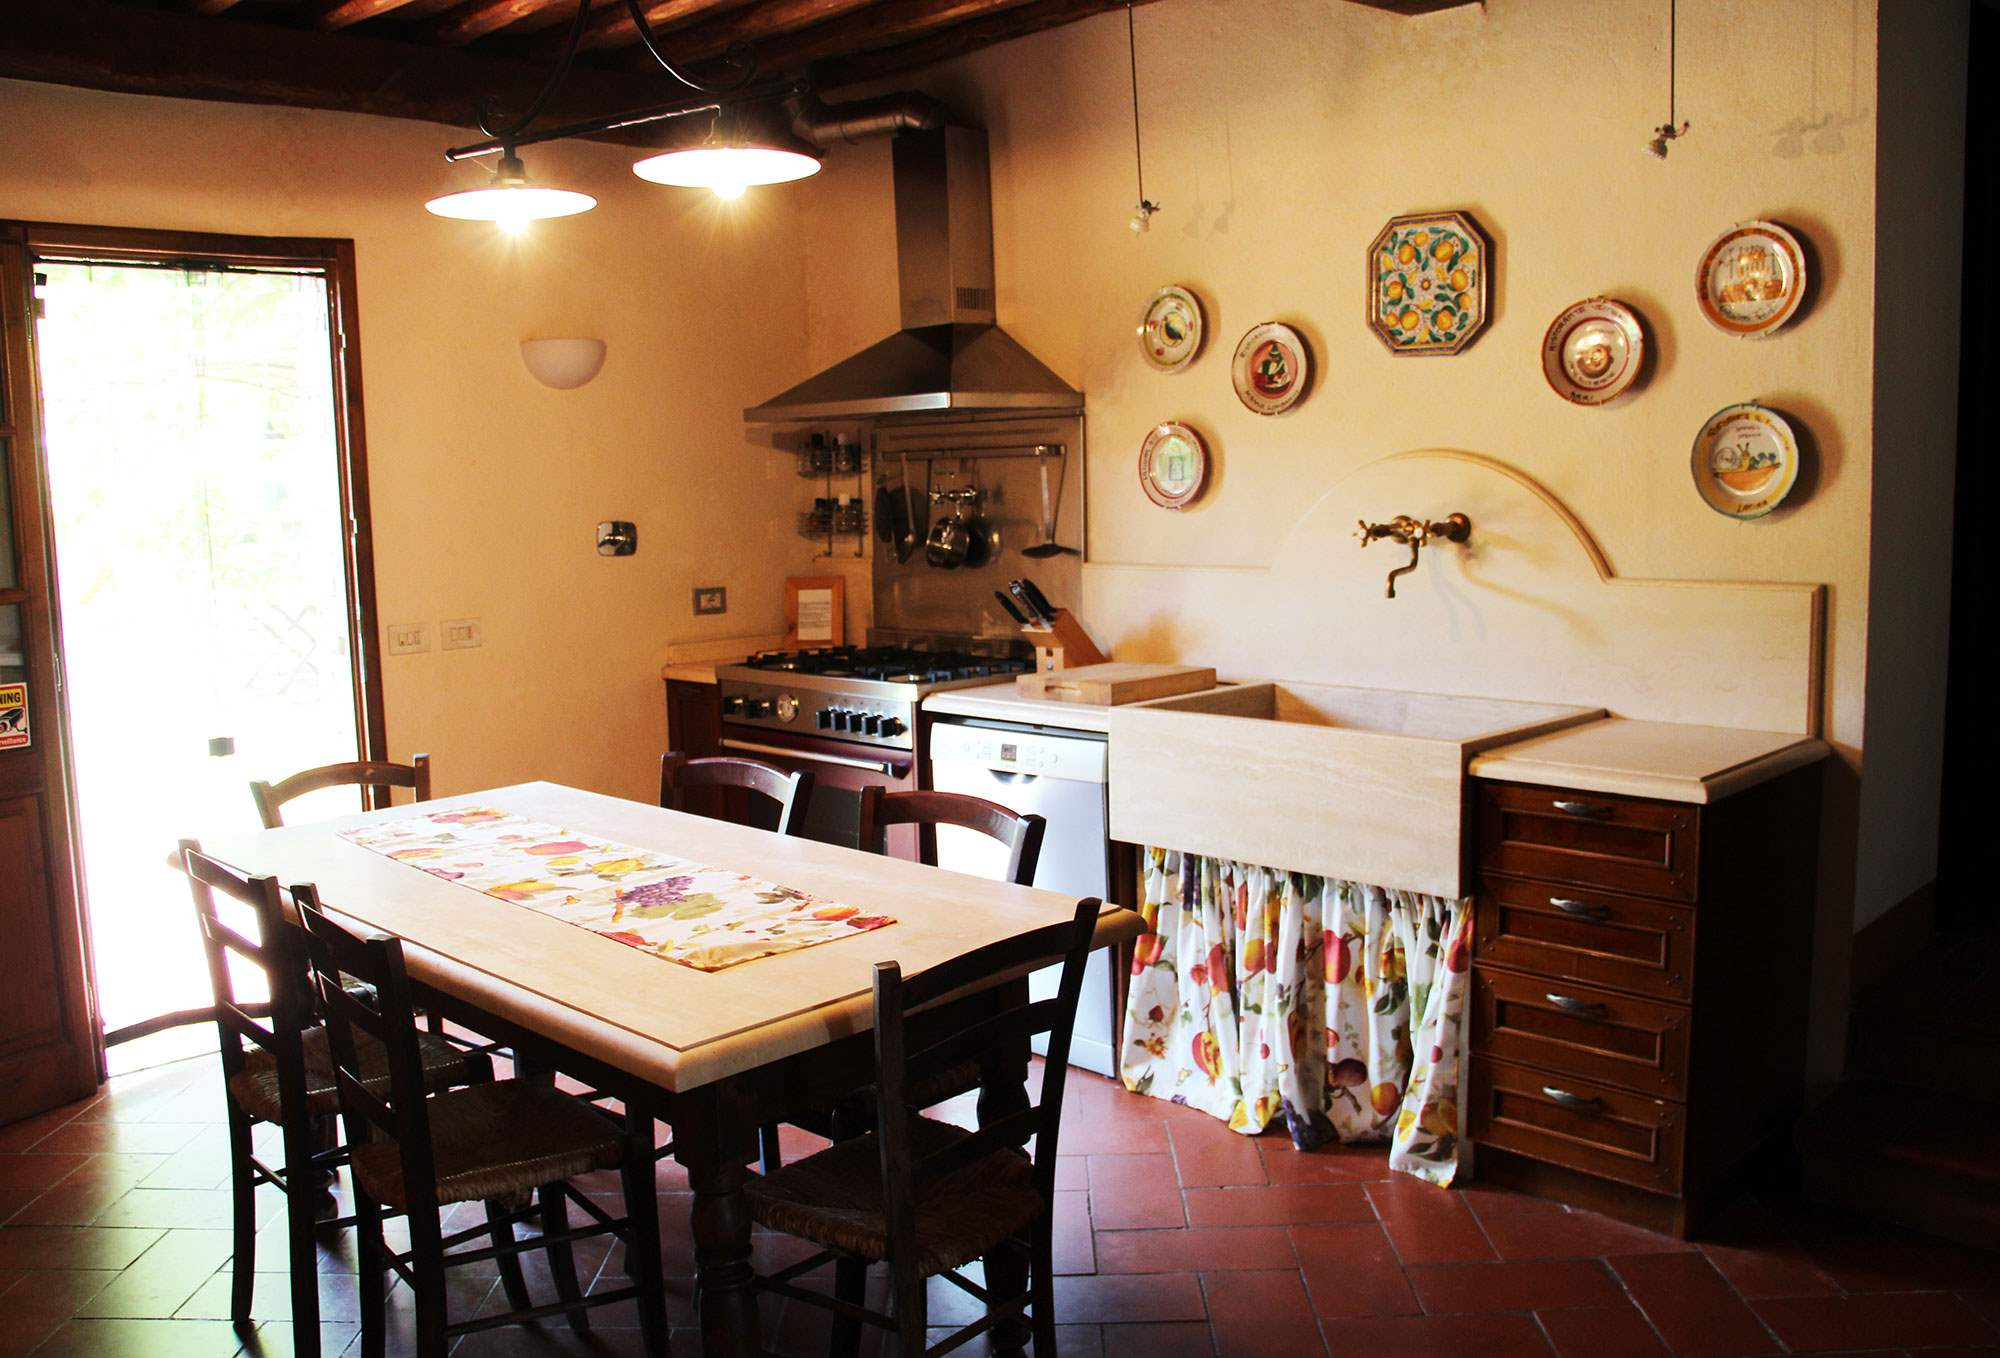 Villa Felicita, Main house only, 6 persons rate, 3 bedroom villa in Chianti & Countryside, Tuscany Photo #9